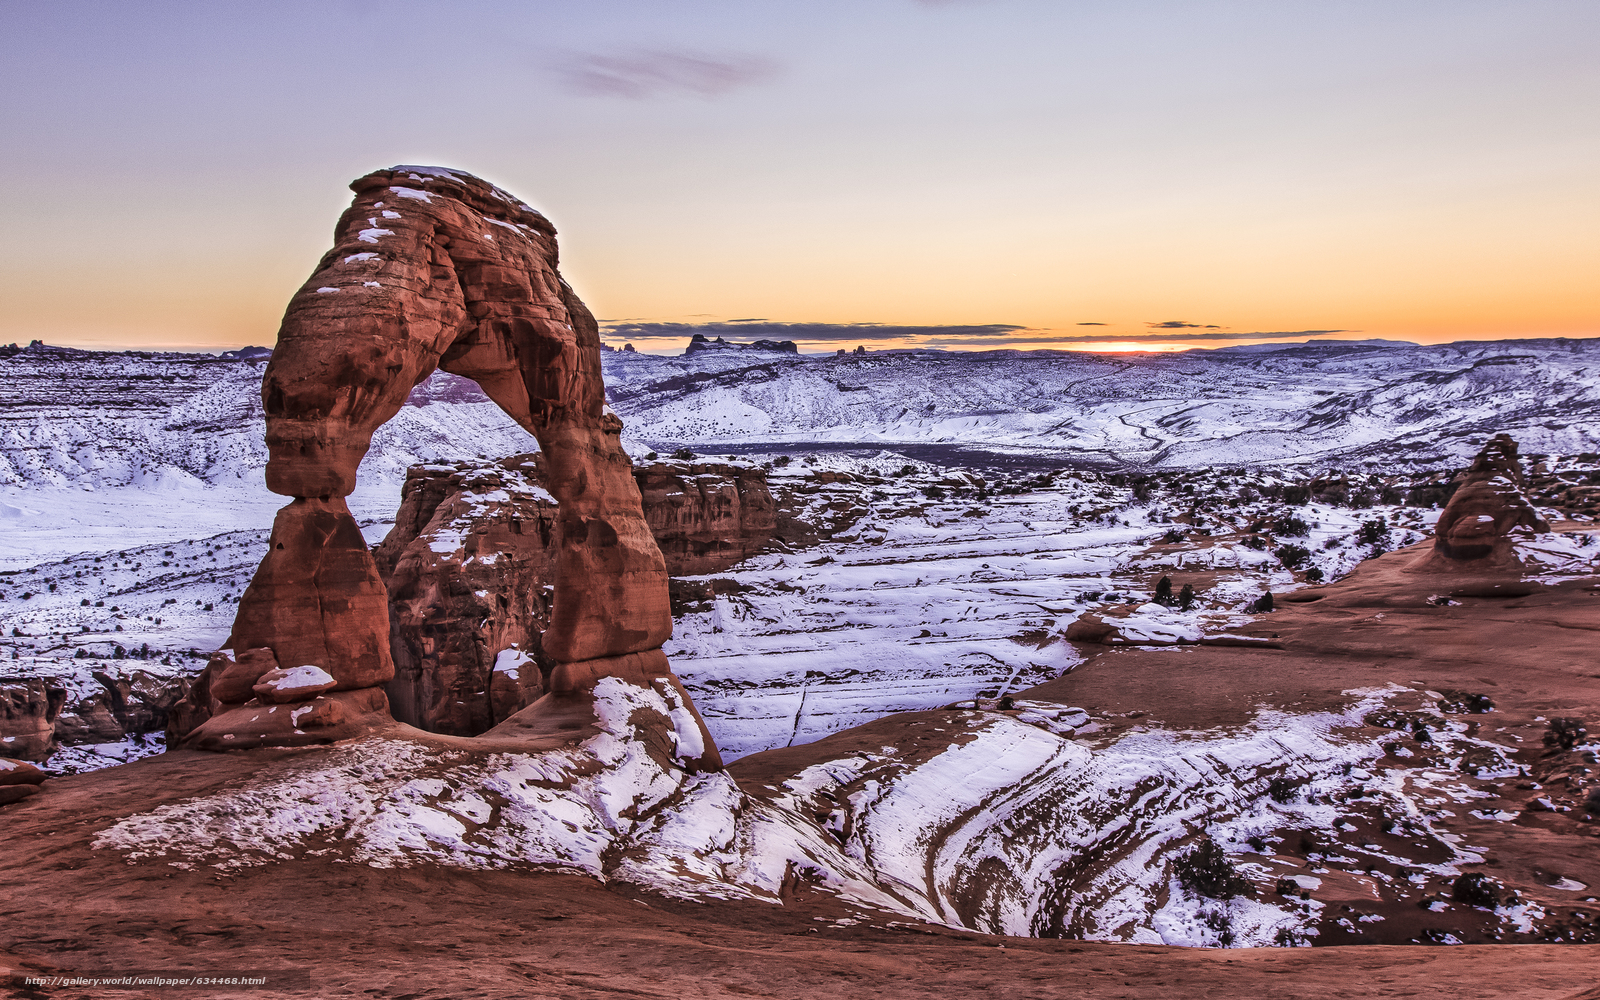 Download Wallpaper Delicate Arch Winter Arches National Park Sunset Free Desktop In The Resolution 2560x1600 Picture No634468